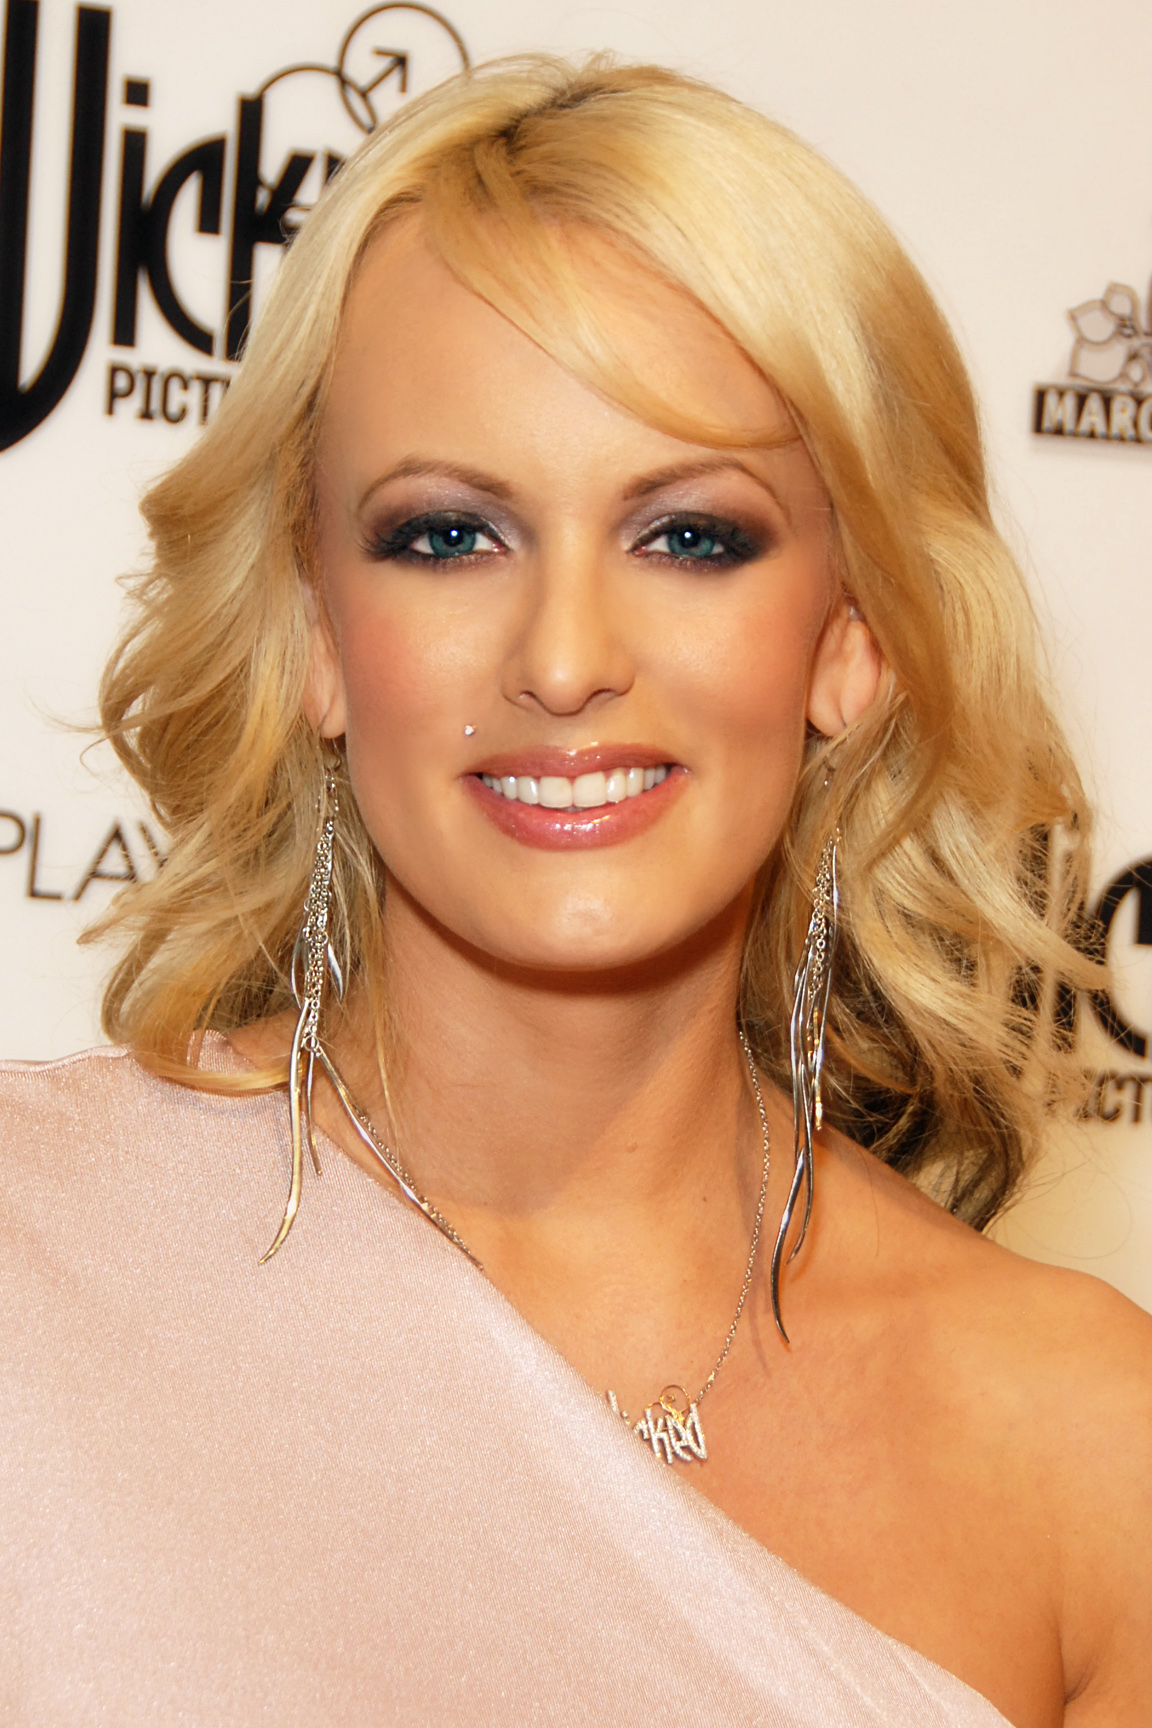 The Stormy Daniels Story Finally Has a Newsworthy Allegation